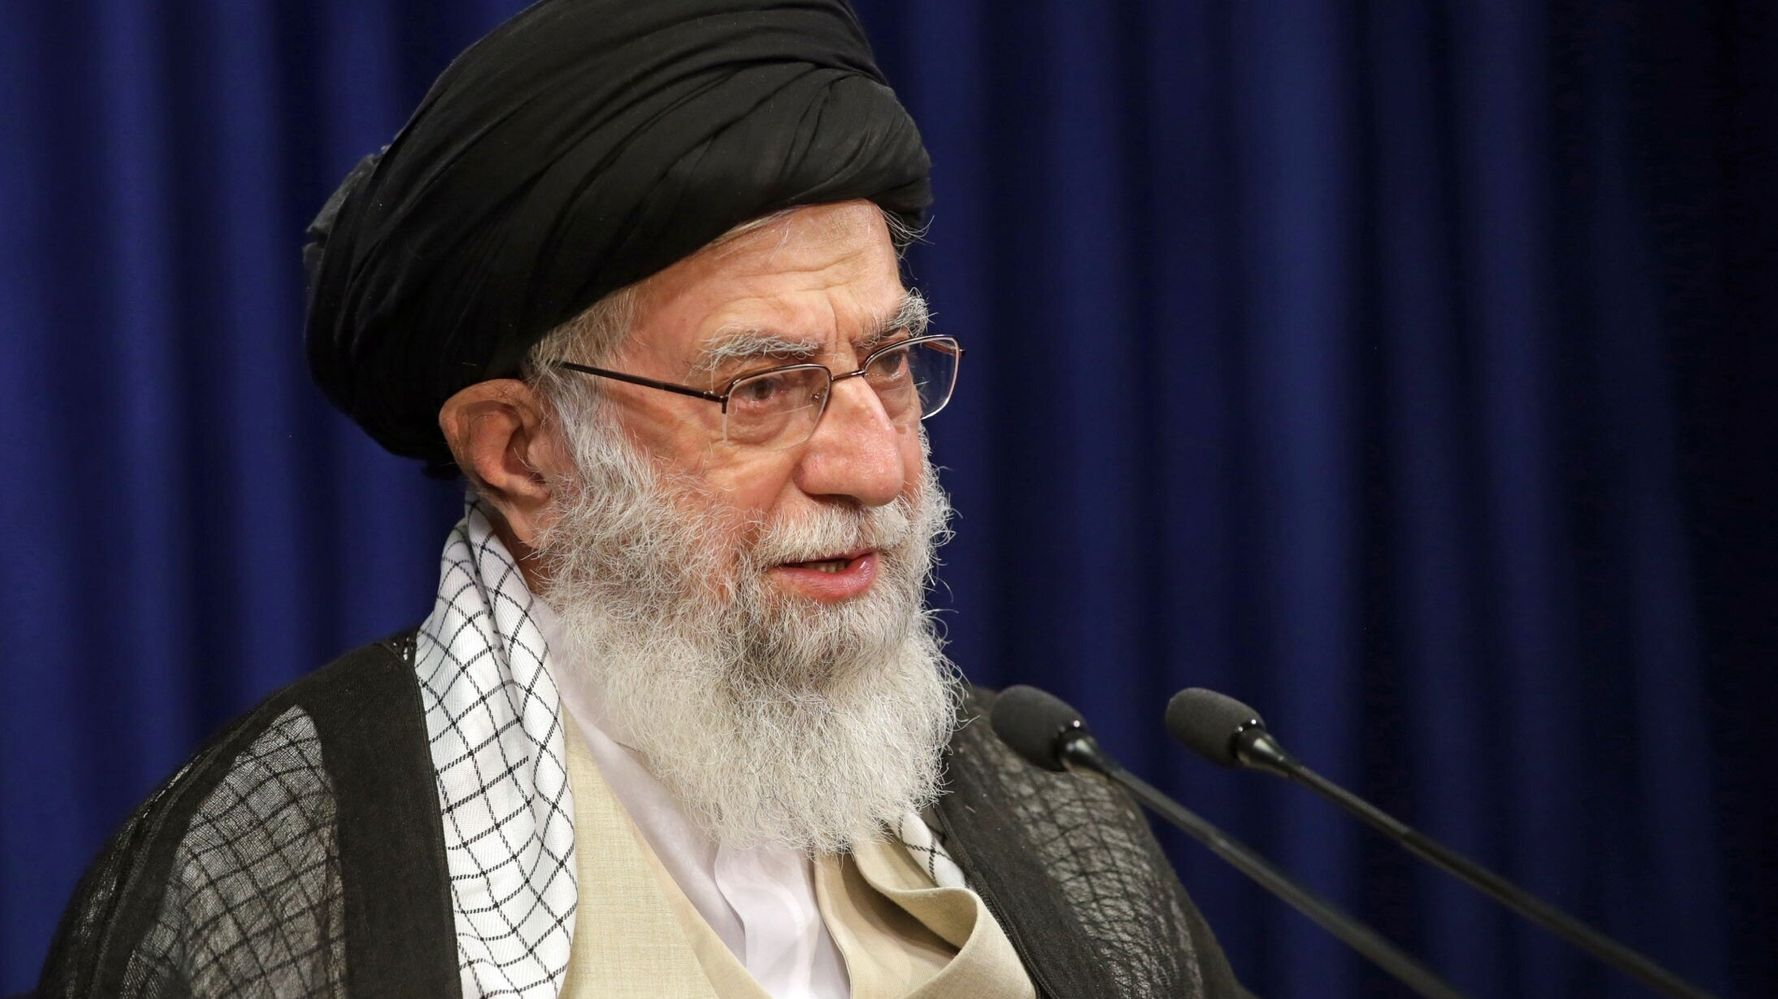 Iran's Supreme Leader Vows Revenge Over Slain Scientist